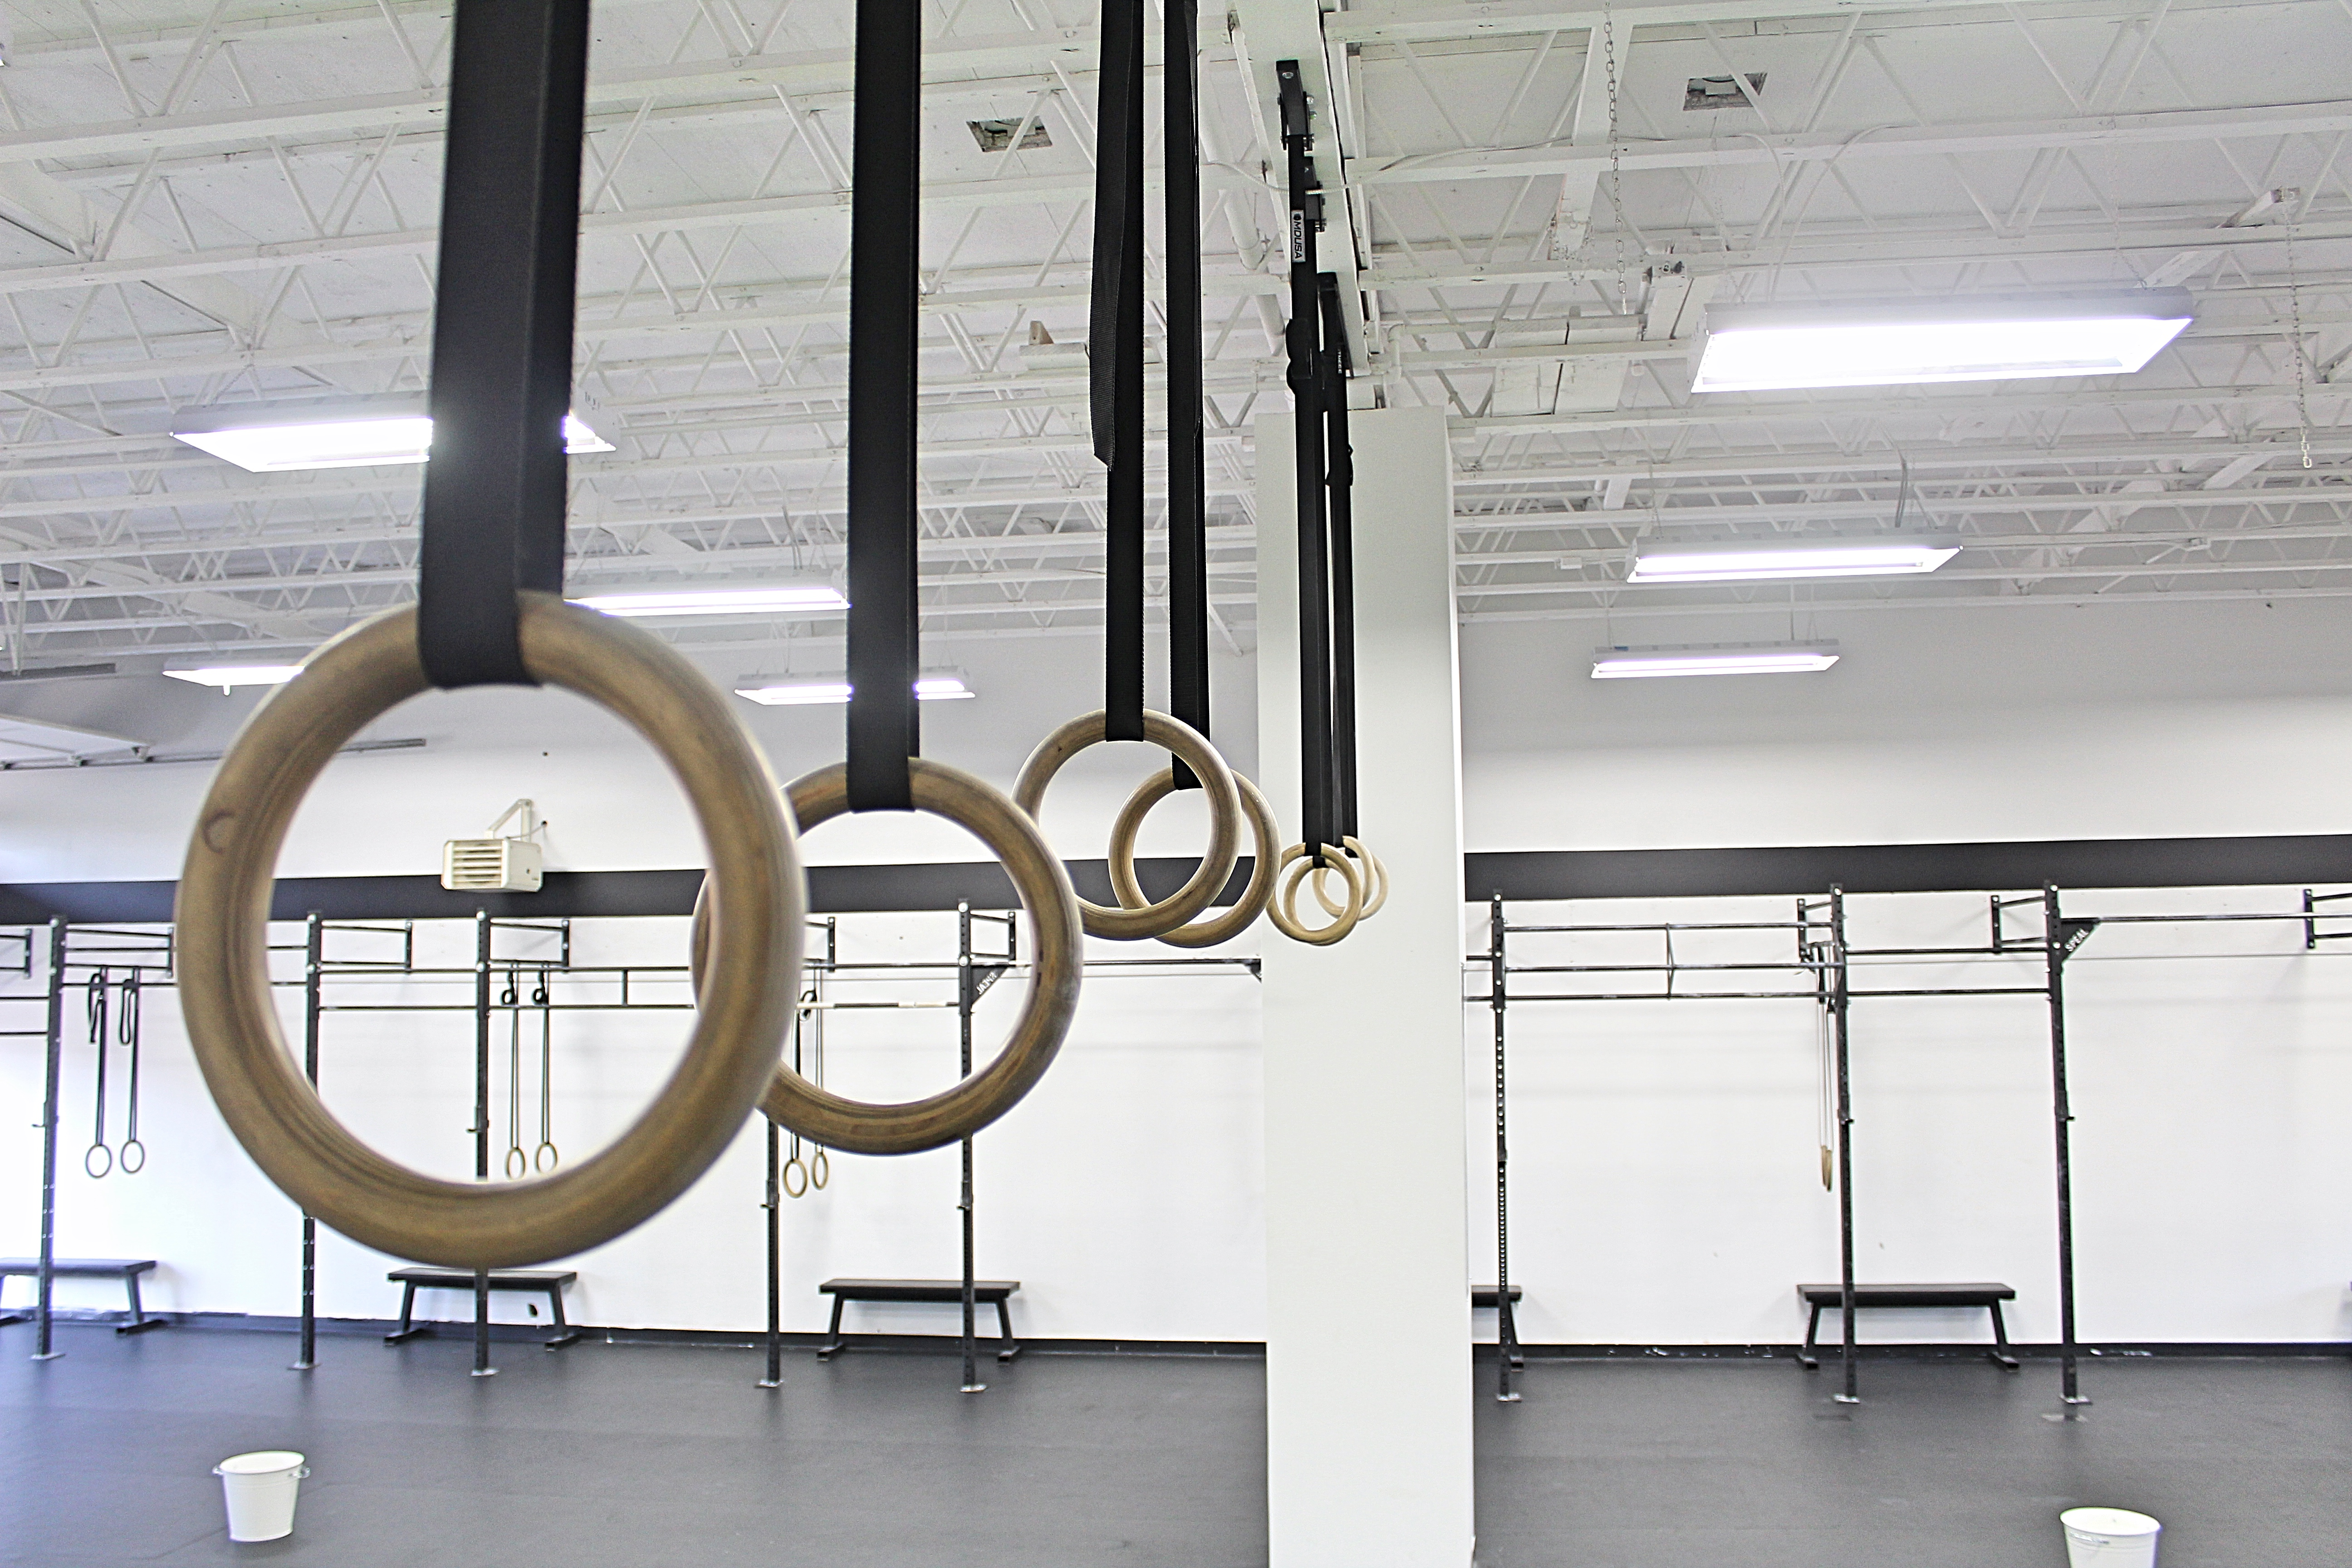 GYM MUSCLE UP RINGS